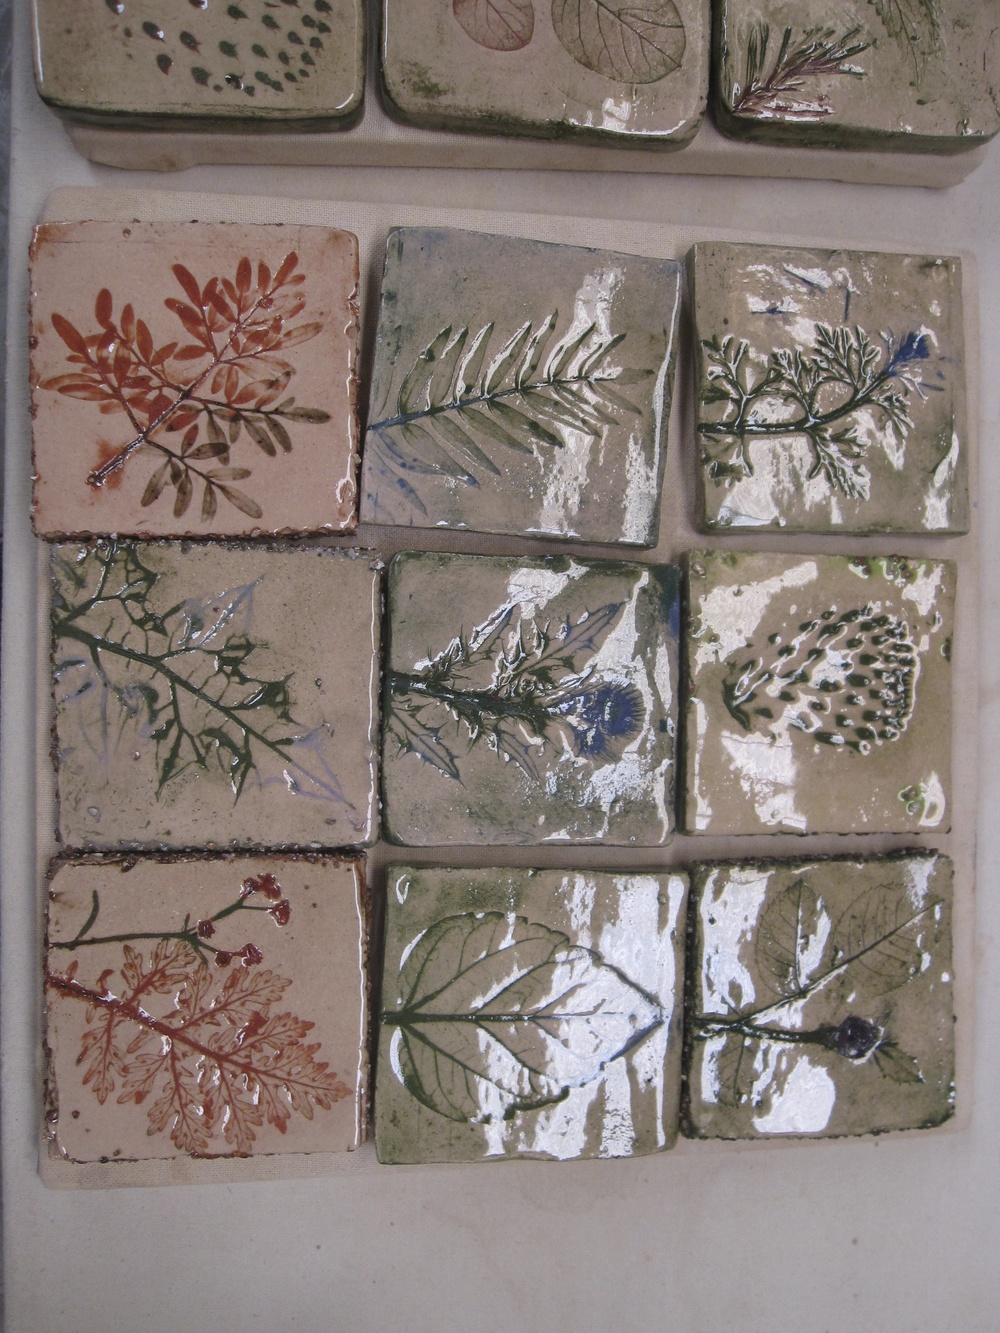 plant impressions - tiles - Kathryn Purse